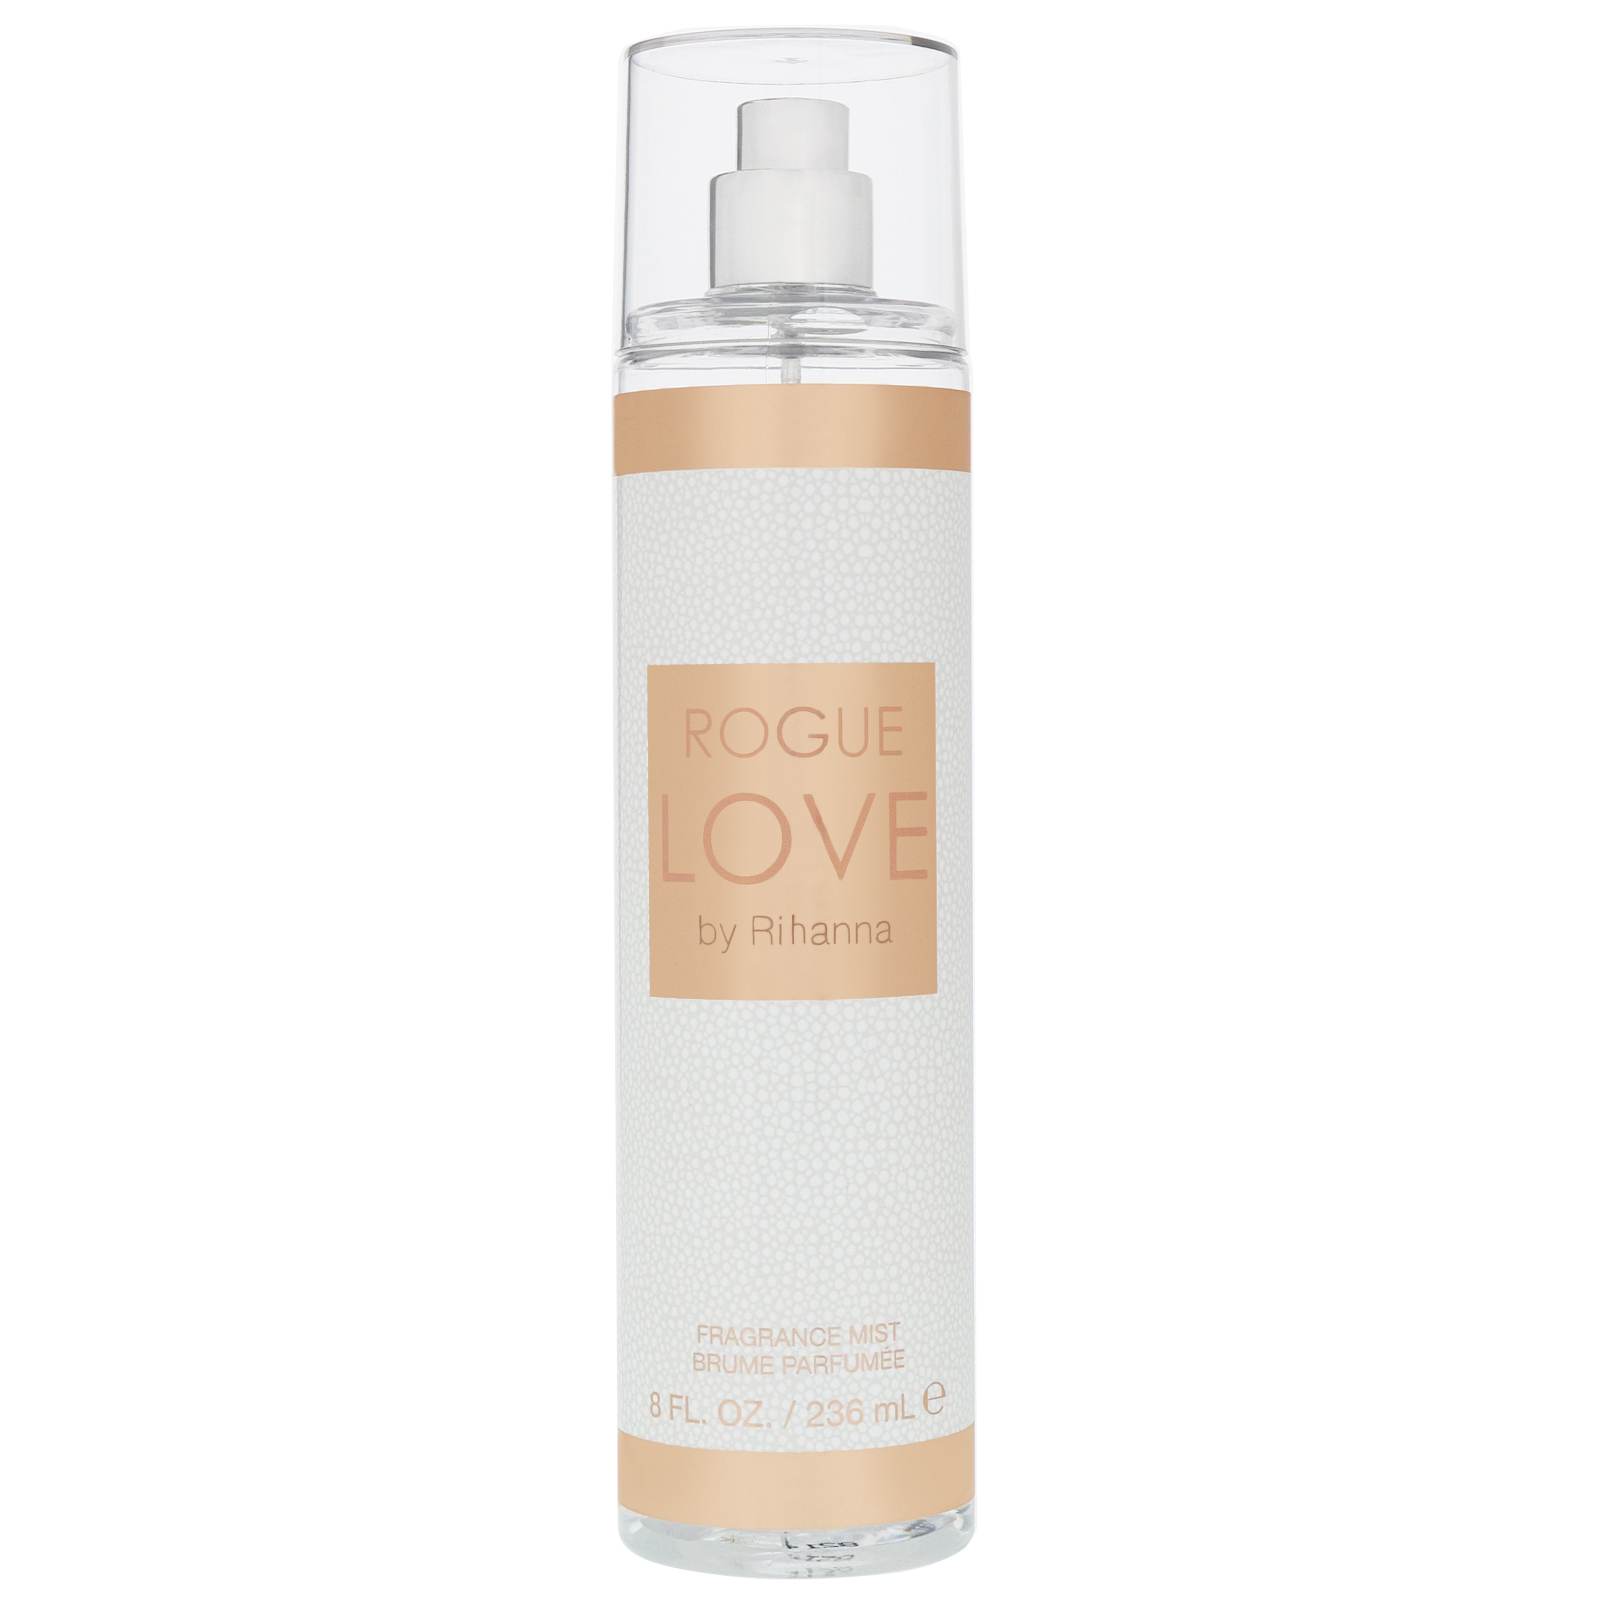 Rihanna Rogue Love Body Mist Spray 236ml